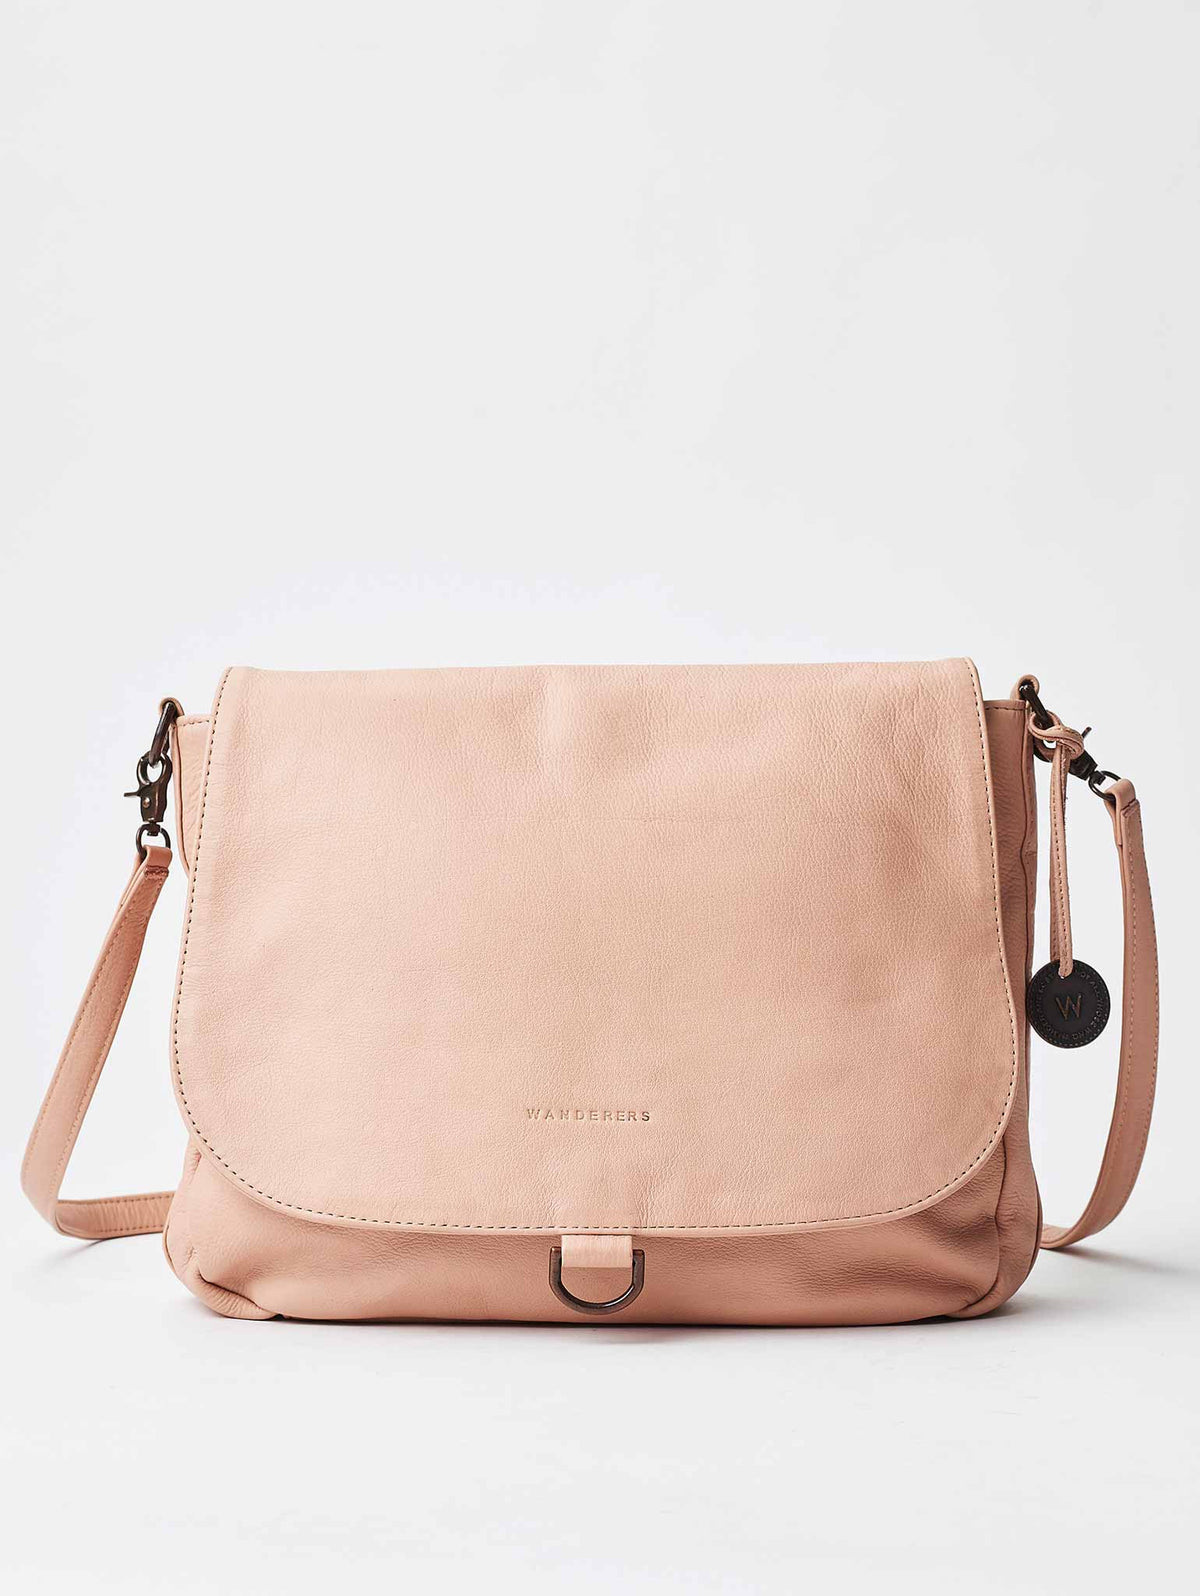 The Munich Crossbody Satchel